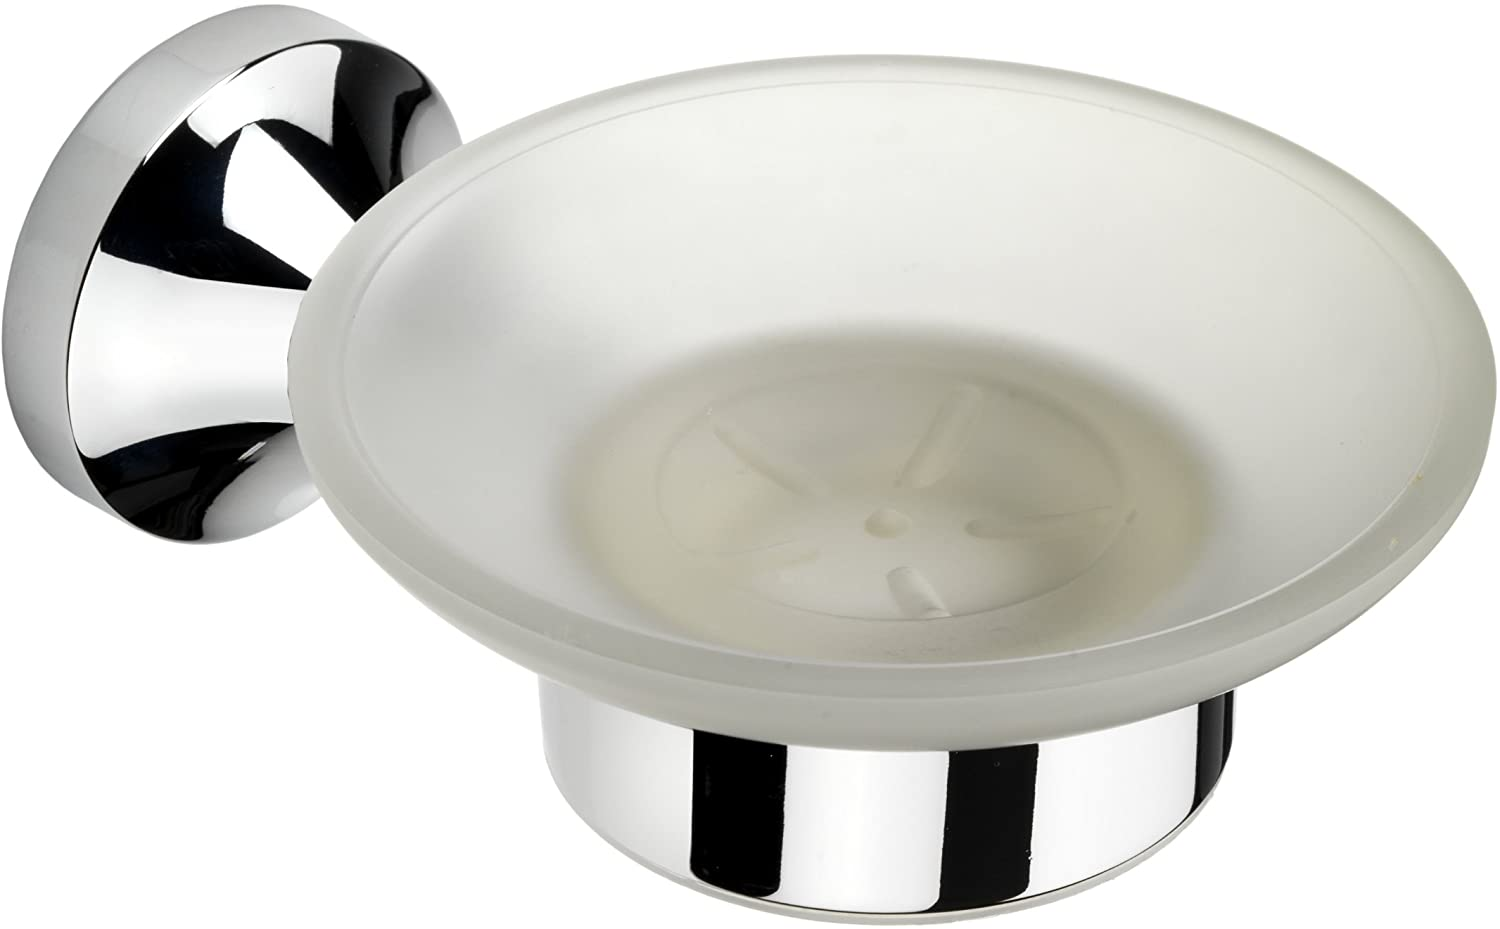 Croydex Flexi-Fix Torbay Soap Dish and Holder